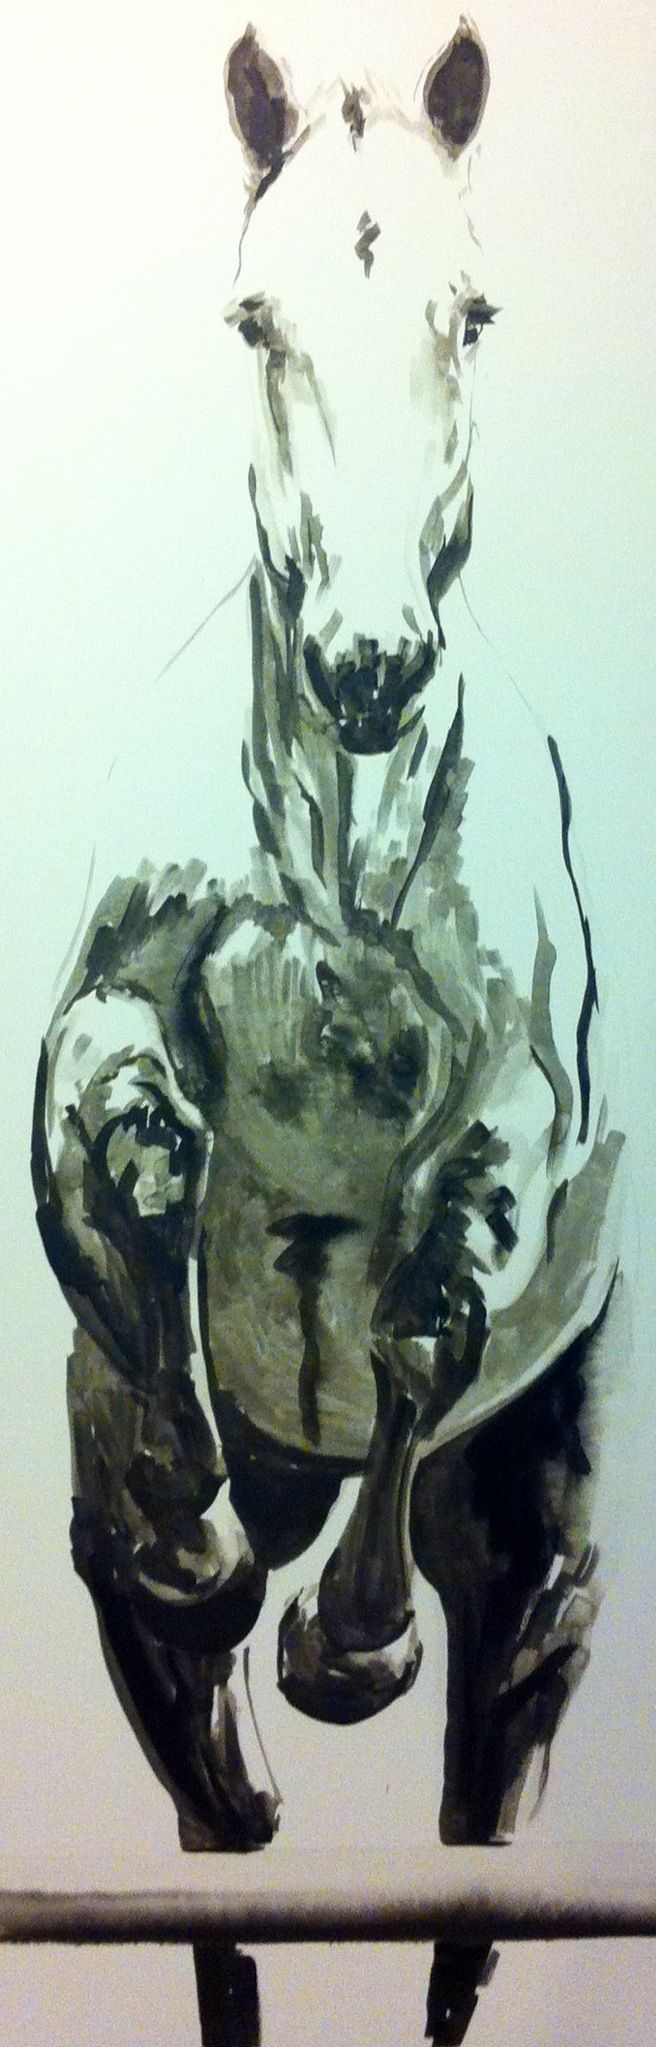 COCO private commission by jennifer mack 72x24 India Ink on Canvas SOLD www.jmackfineart.com